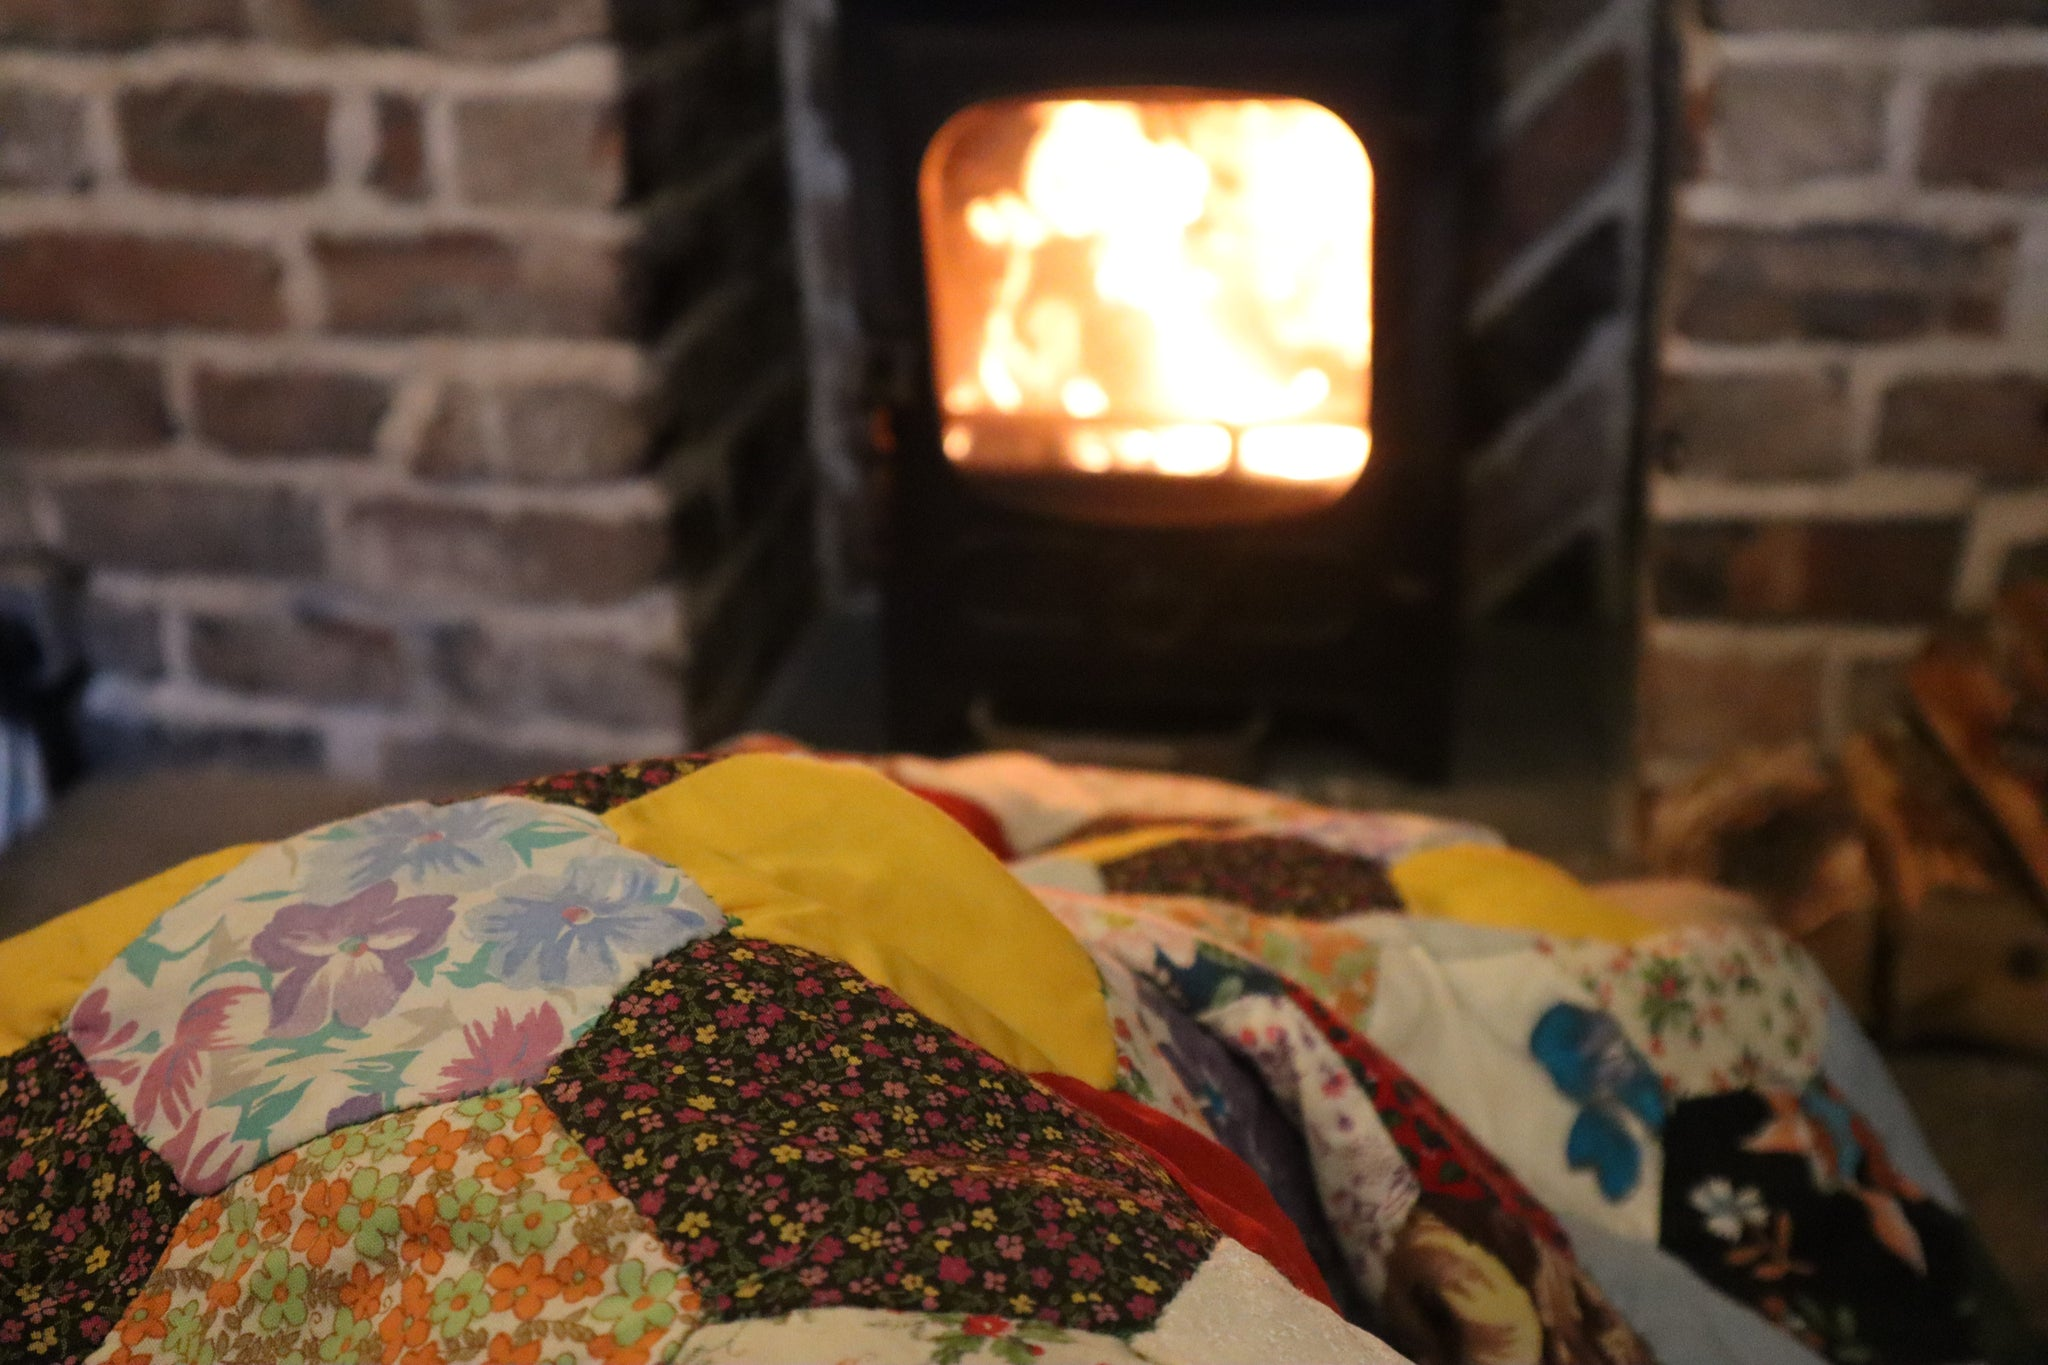 cottagecore interiors, bramble and fox uk hygge shop, patchwork blanket, woodburner